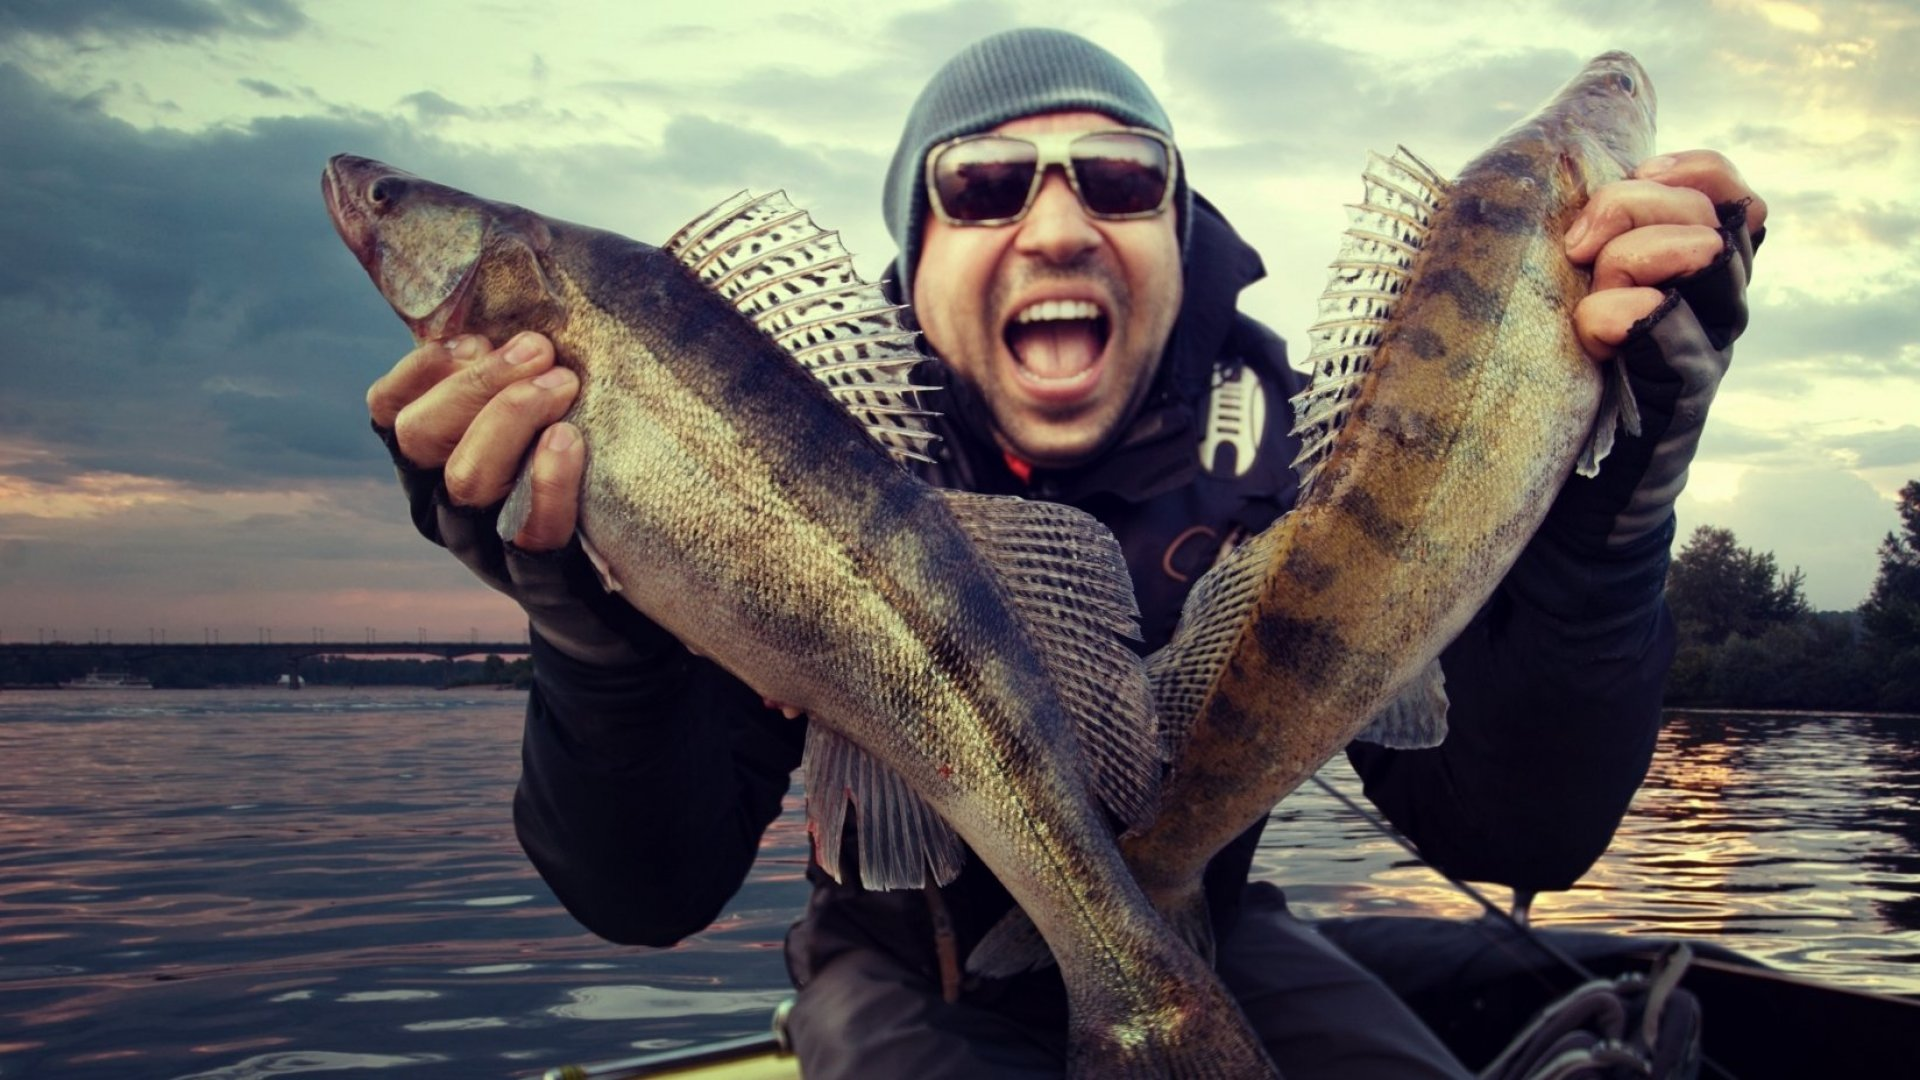 Apply These 3 Fishing Tips to Make Your Sales Emails More Enticing